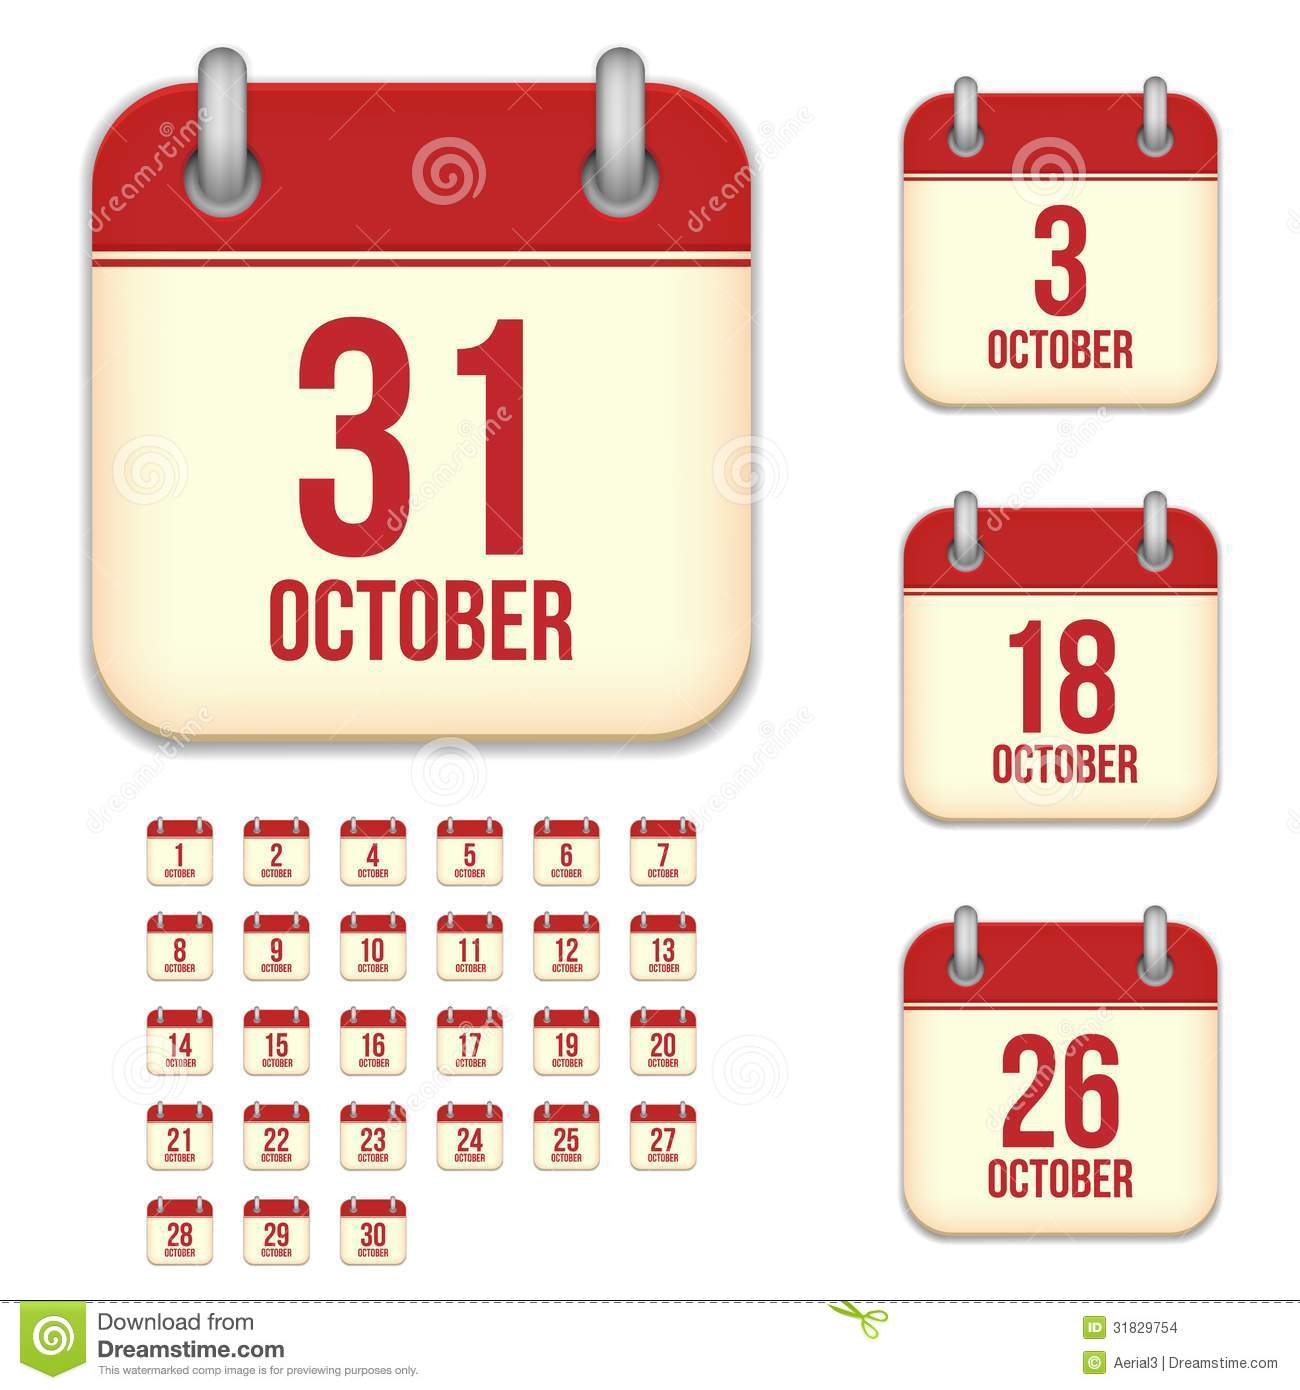 October Vector Calendar Icons Stock Vector  Illustration Of within Calendar Date Icon Generator